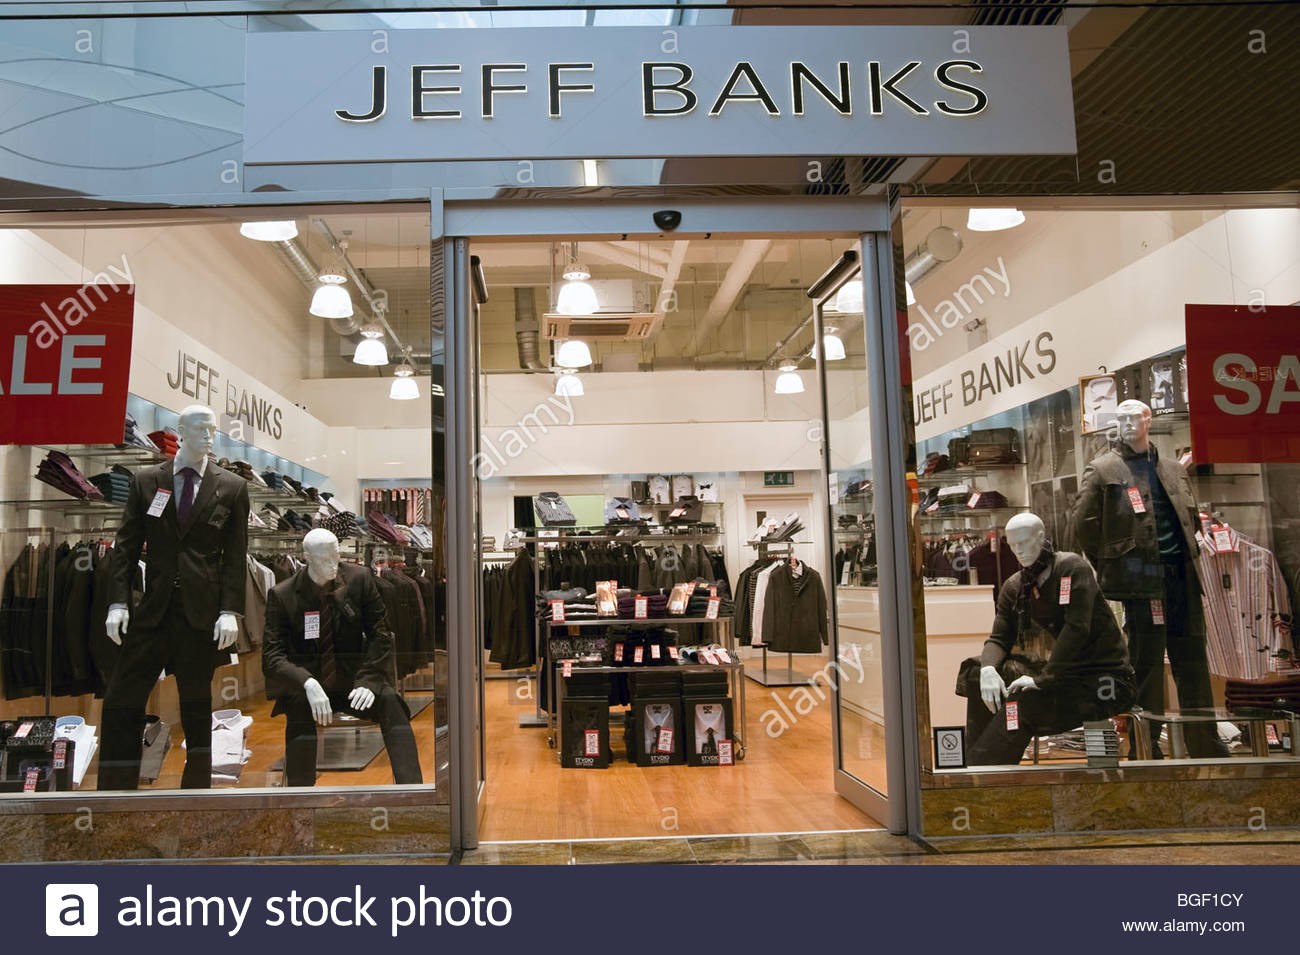 Designer Discount Clothing Websites Jeff Banks clothing shop at